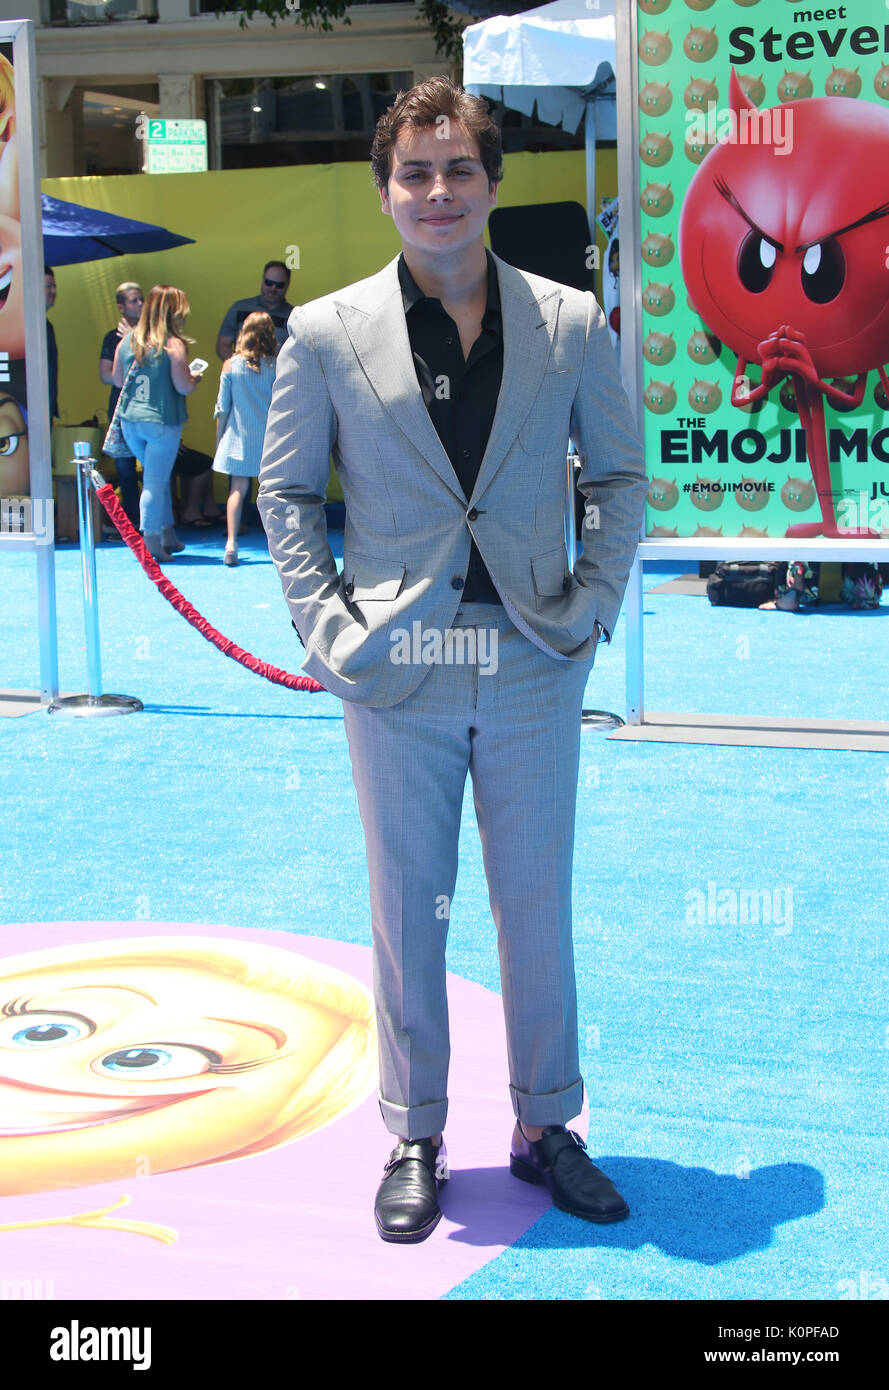 Jake t austin stock photos jake t austin stock images page 2 alamy the world premiere of the emoji movie featuring jake t austin where m4hsunfo